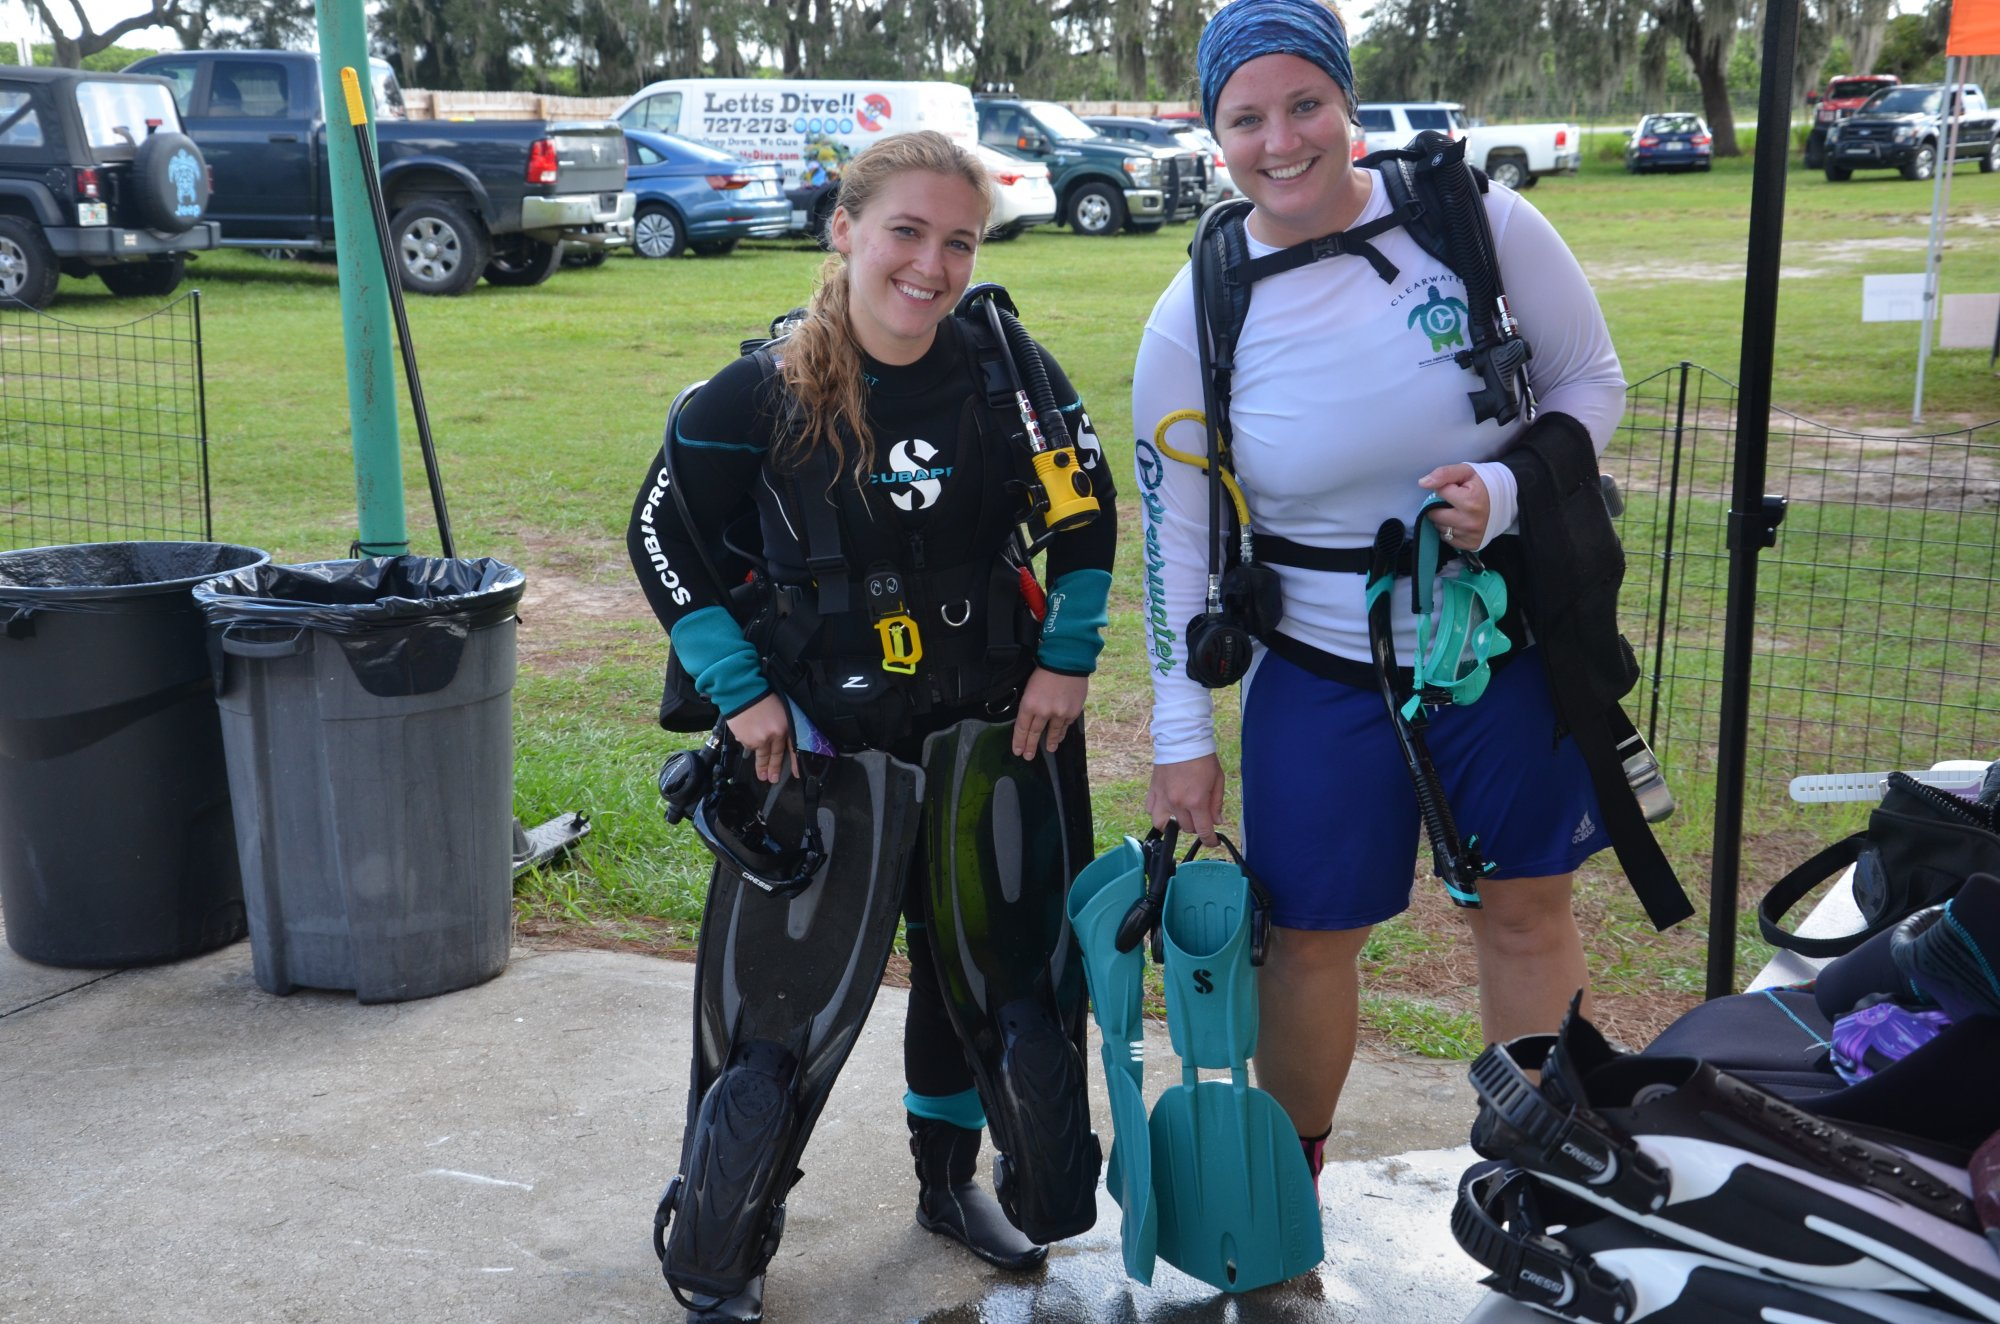 Wednesday Women's Dive Day - May 19, 2021